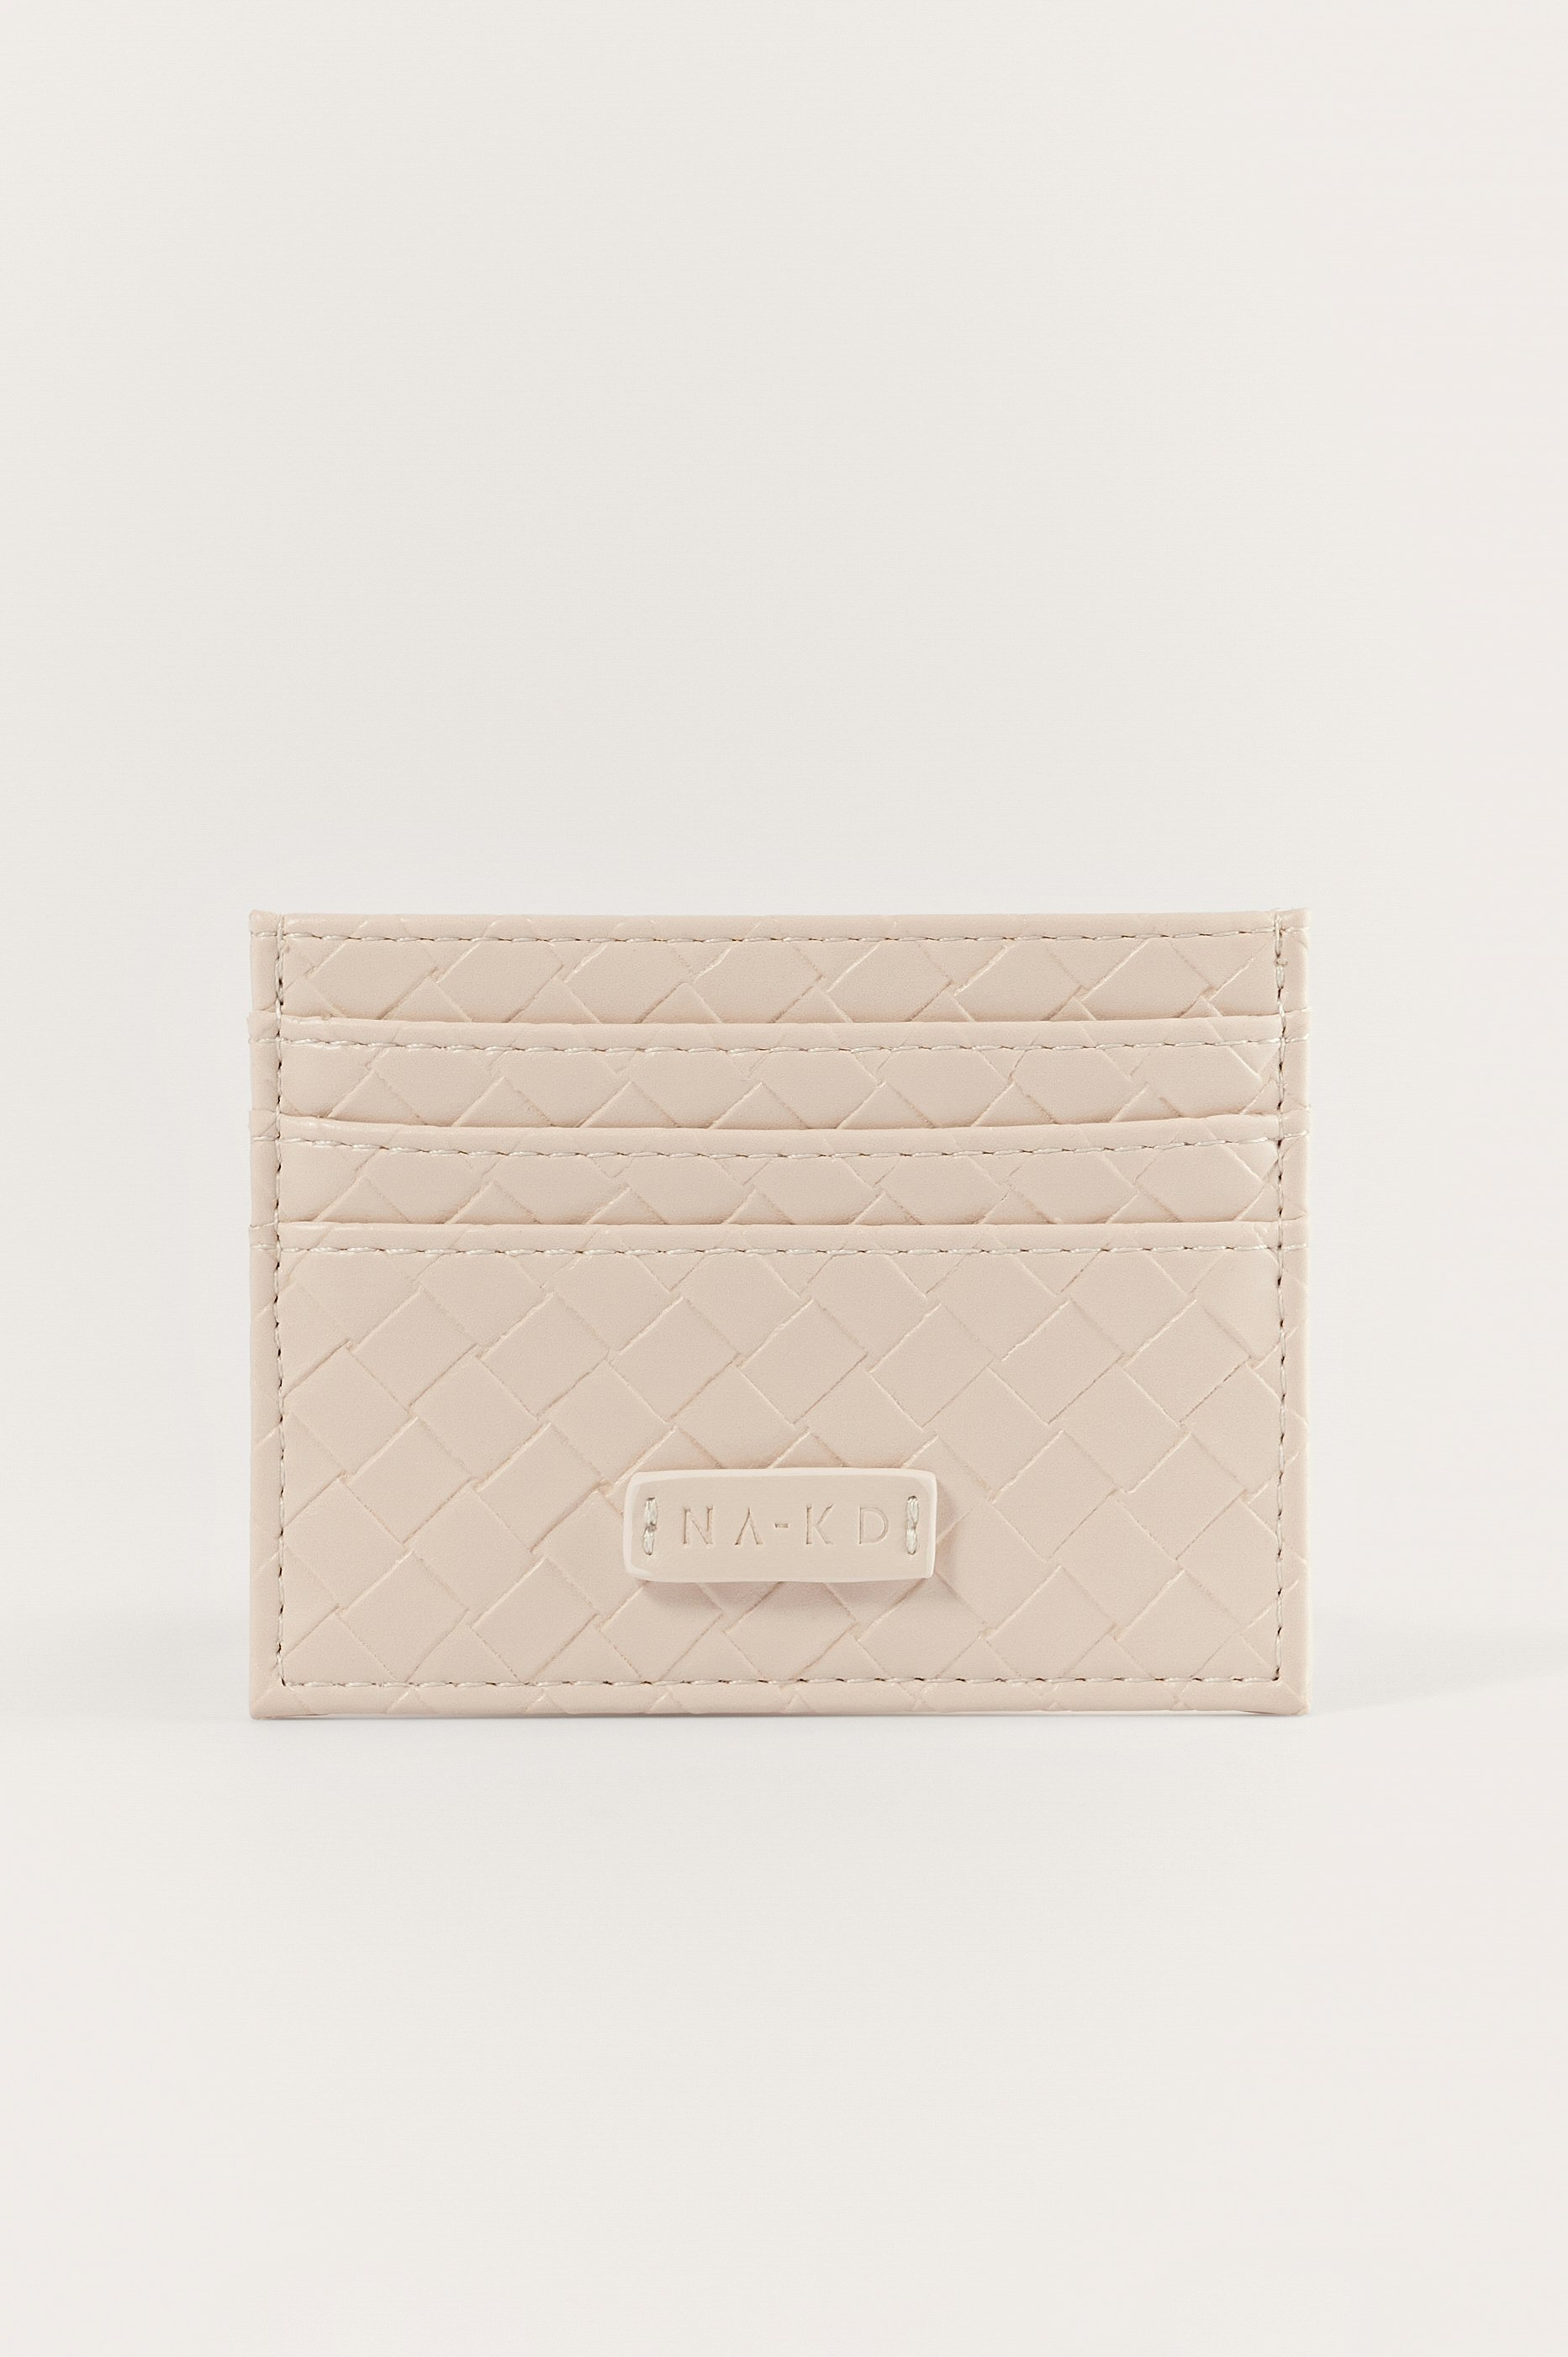 Offwhite Woven Look Cardholder